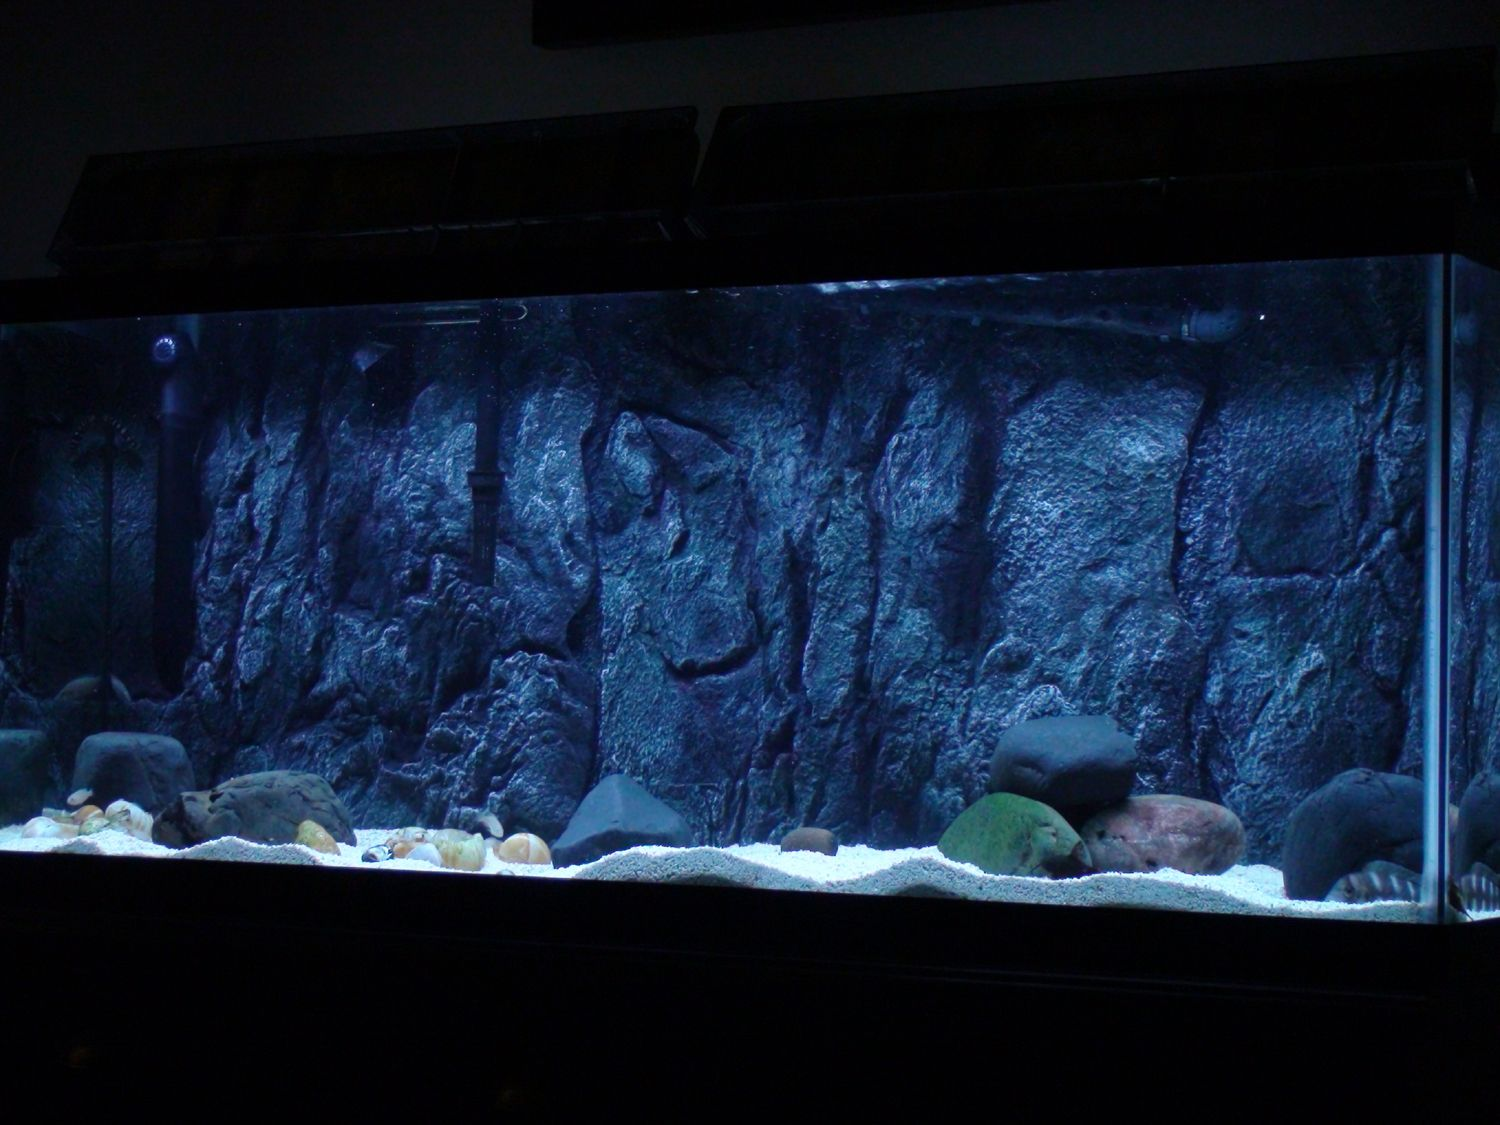 3d aquarium fish tank background feature rock - Diy 3d Aquarium Background Dsc01245 300x225 Installing A 3d Background In An Established Tank